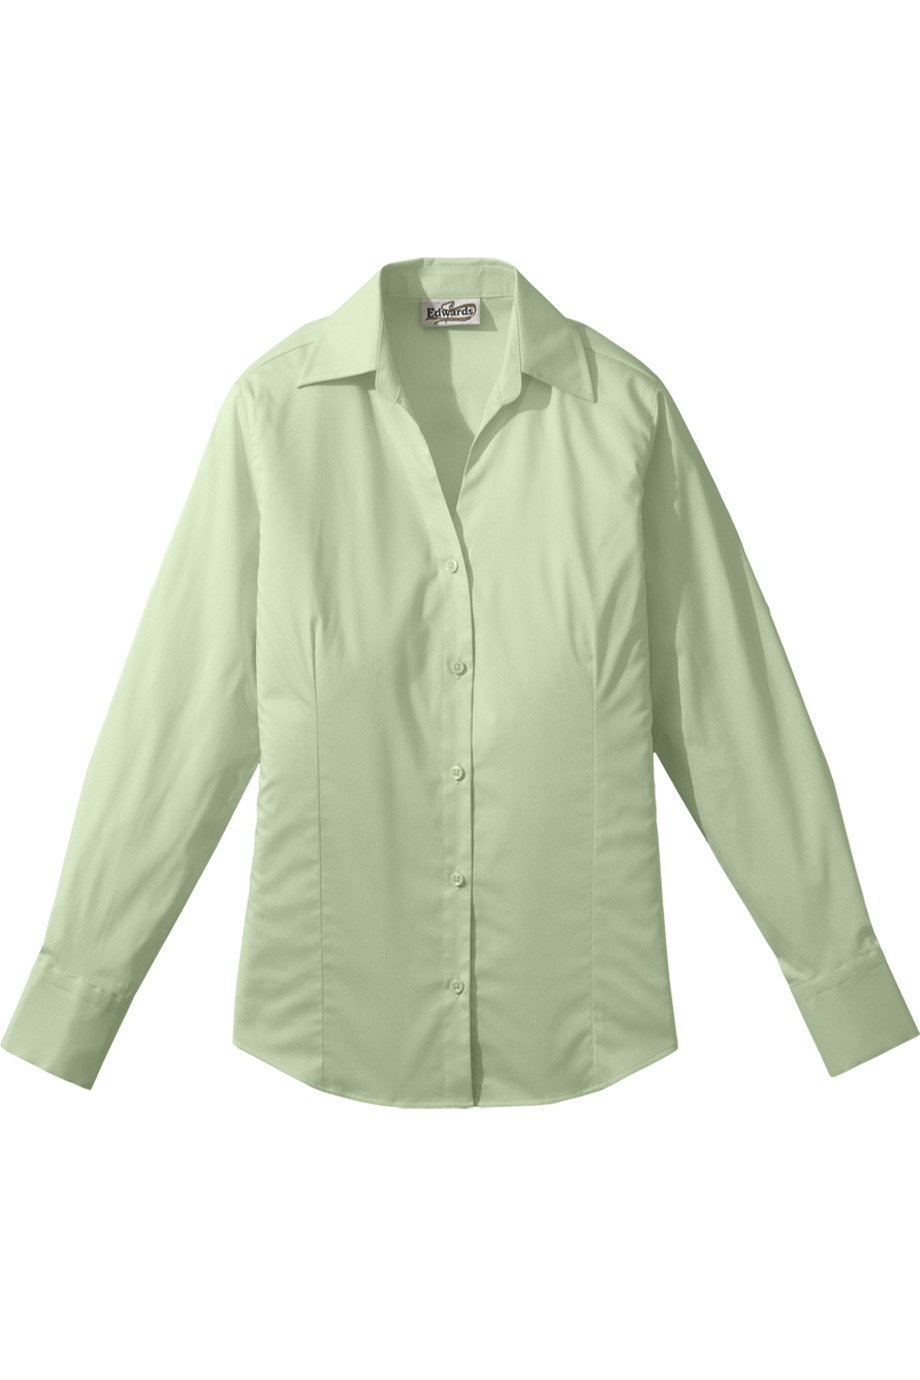 Edwards Garment 5034 - Women's Long Sleeve V-neck Tailored ...